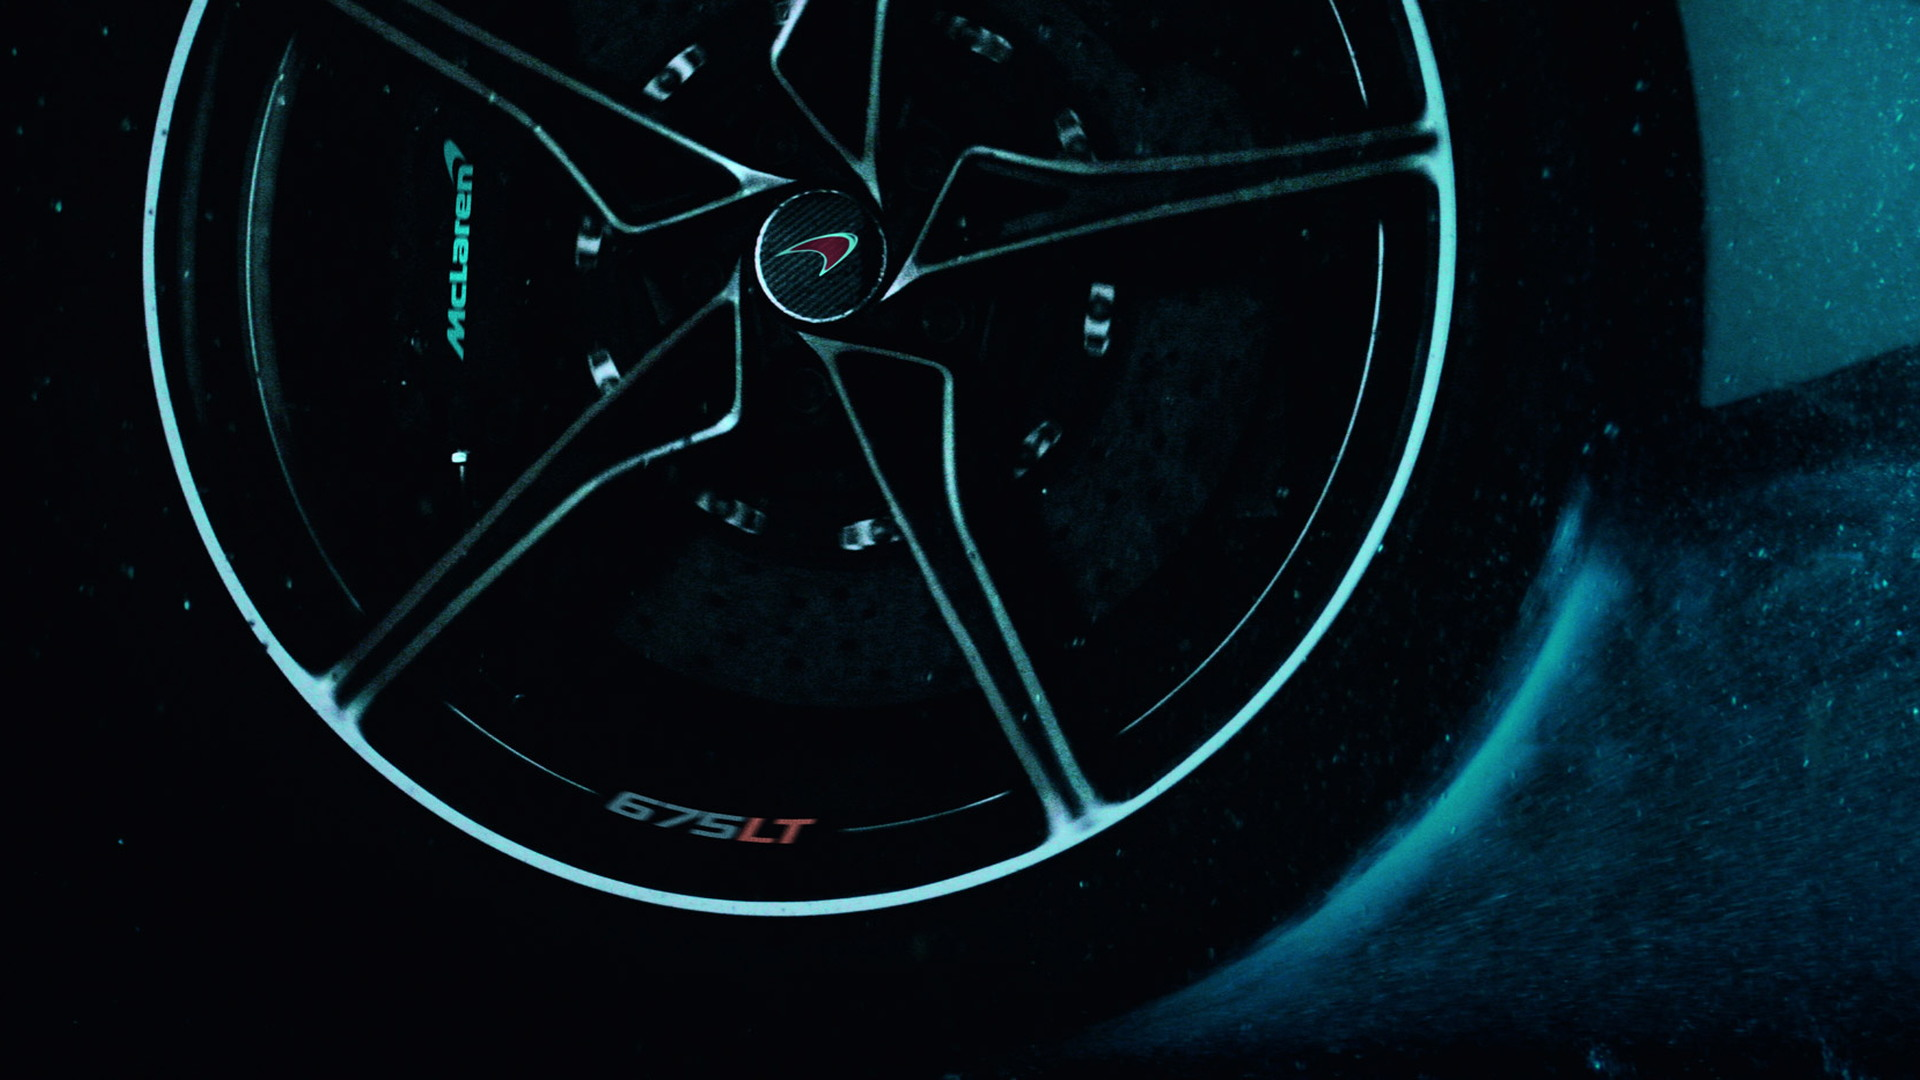 Teaser for McLaren 675LT debuting at 2015 Geneva Motor Show